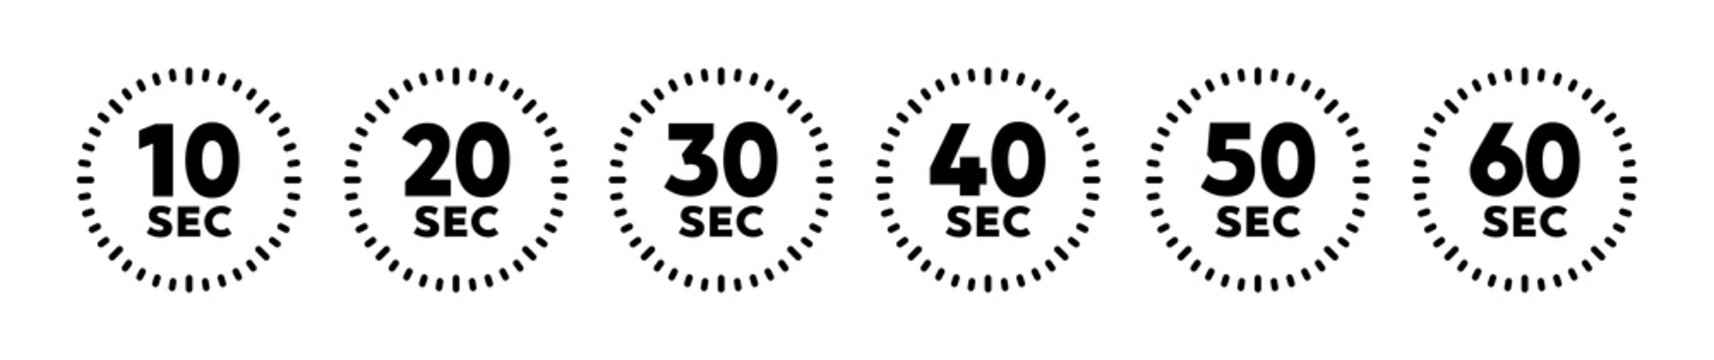 Digital timer vector set icon